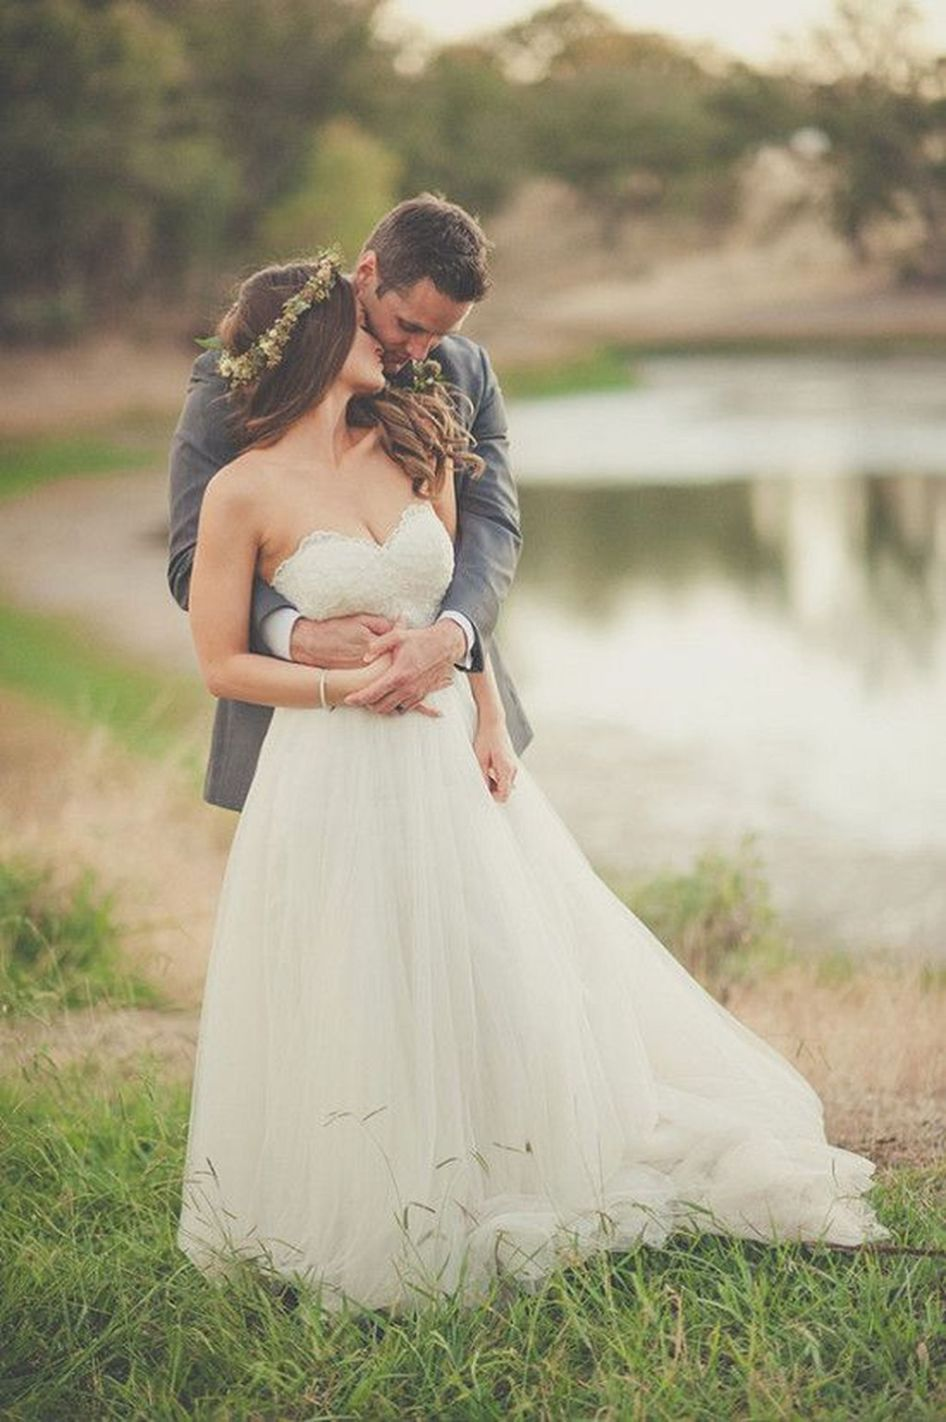 Bride And Groom Wedding Photography Ideas Find Your Perfect Pose